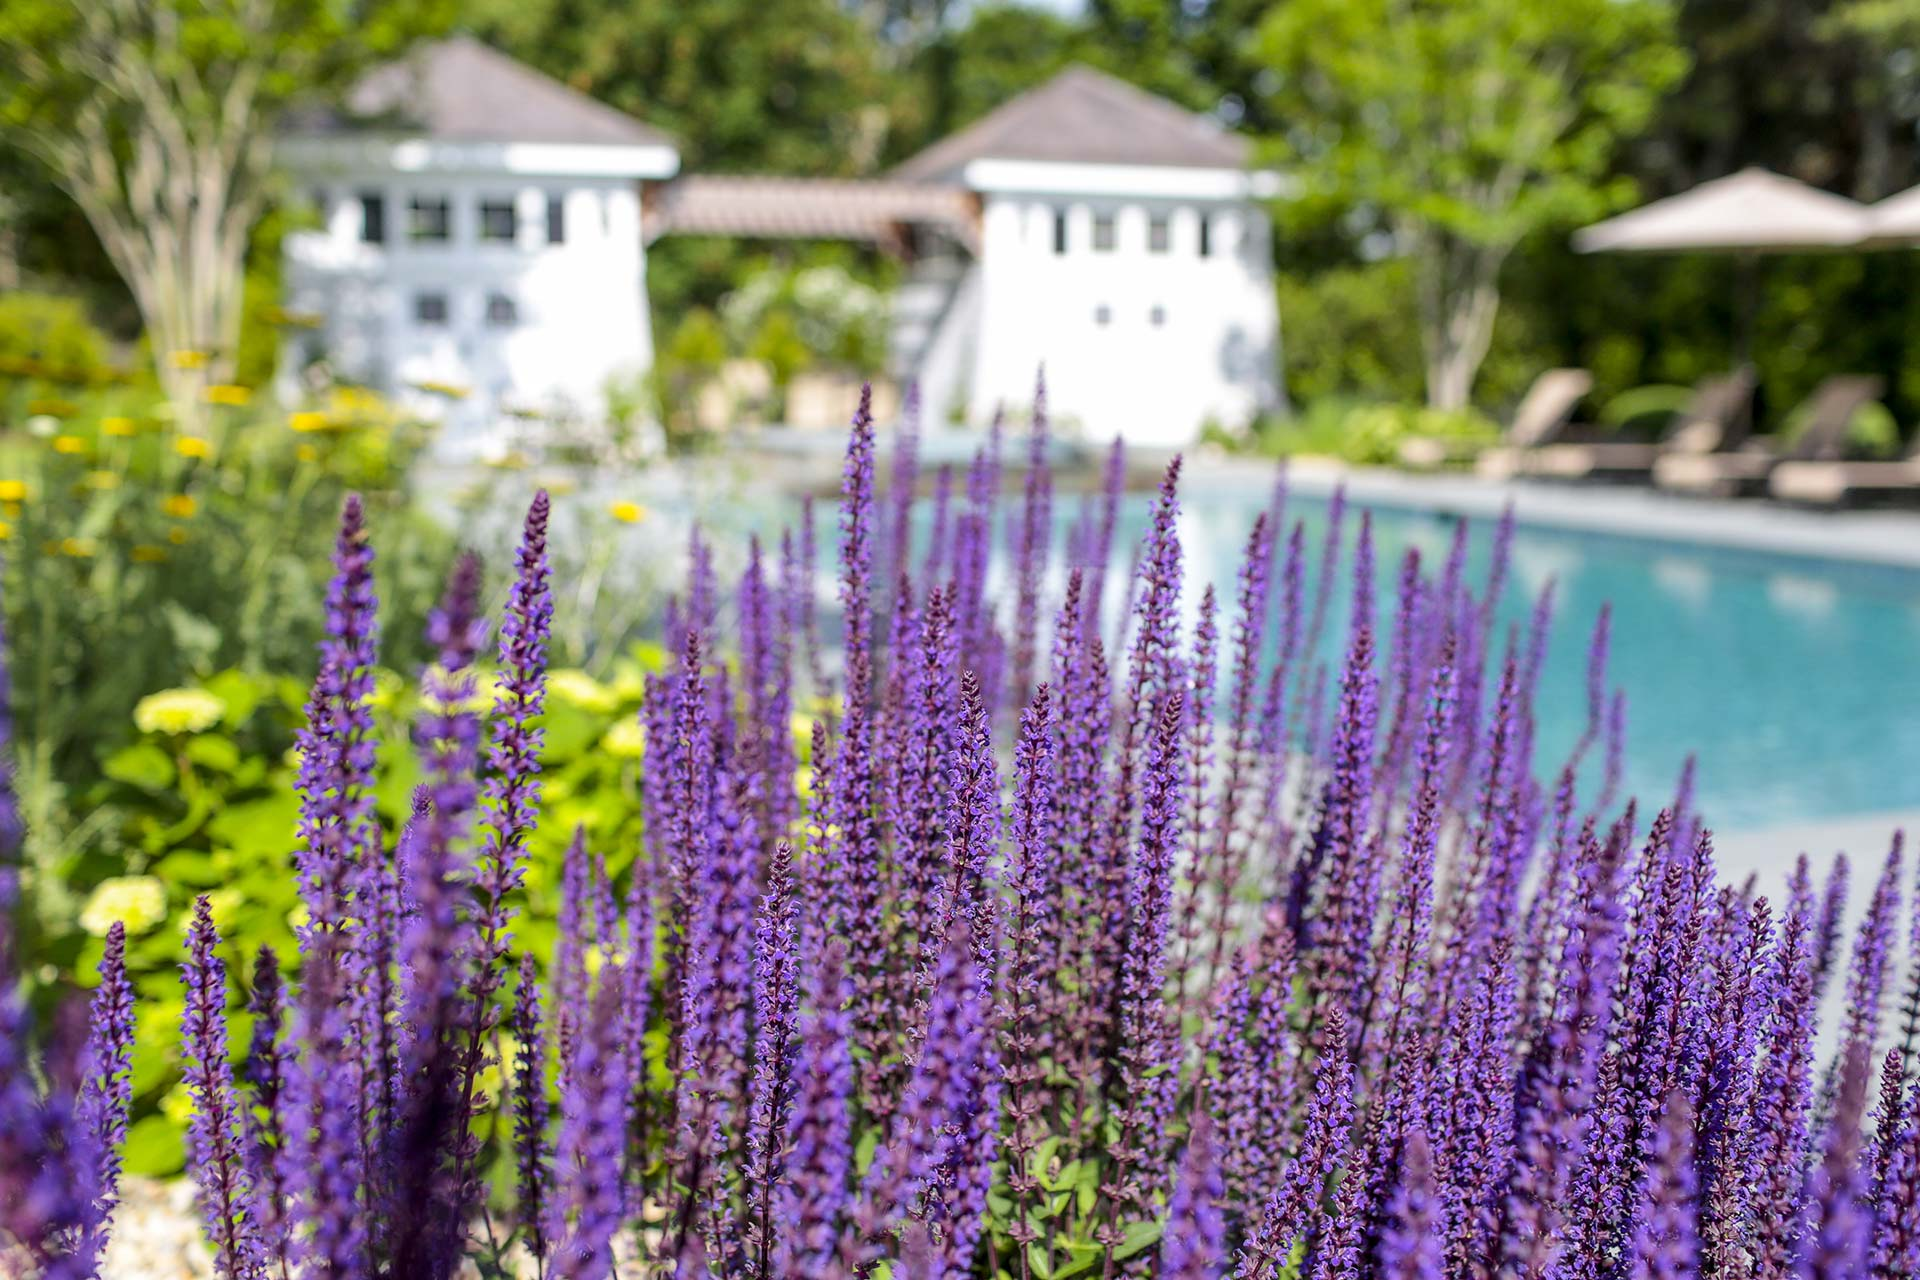 Well-designed plantings can offer functional and aesthetic value to any property.